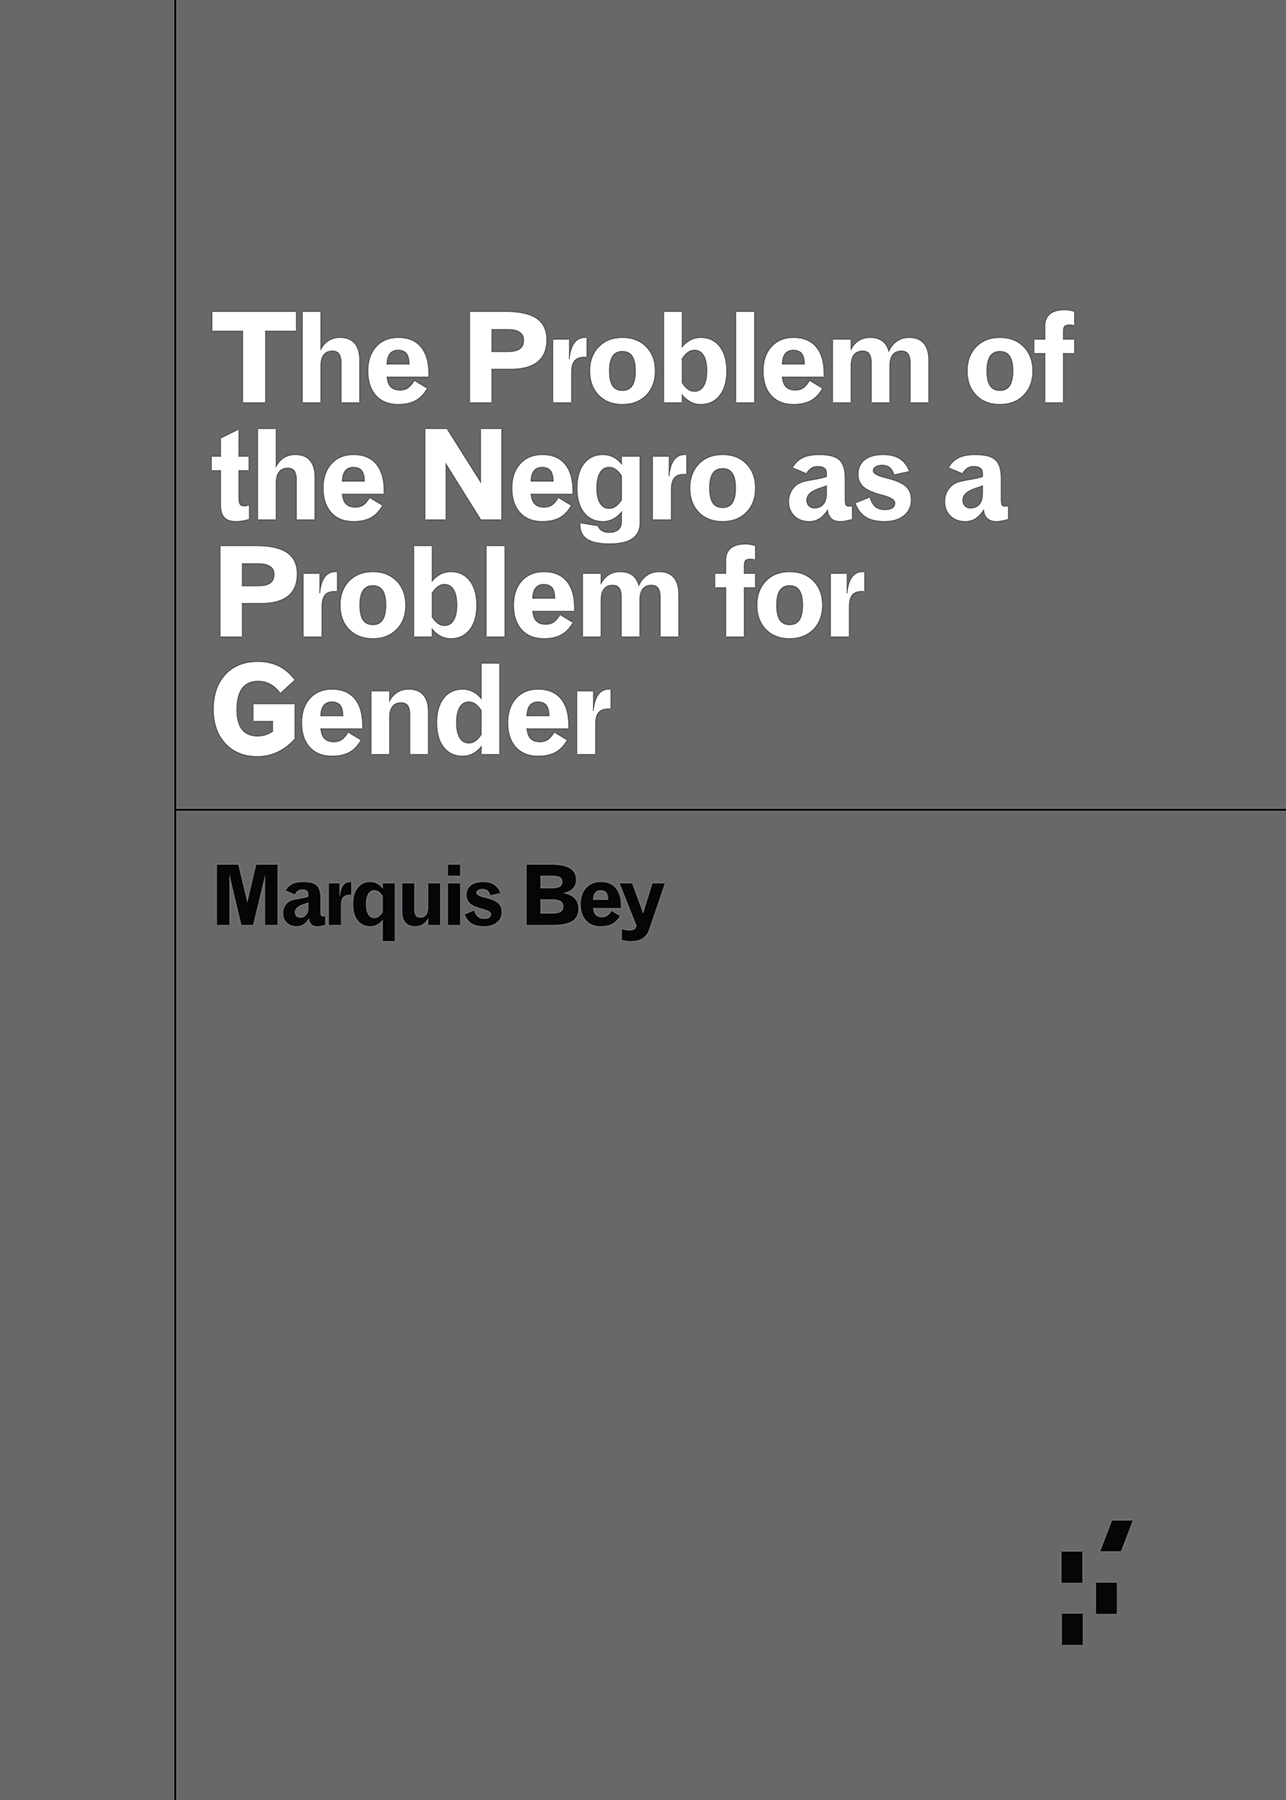 Book cover: white title text on gray background. The author's name appears in black type.